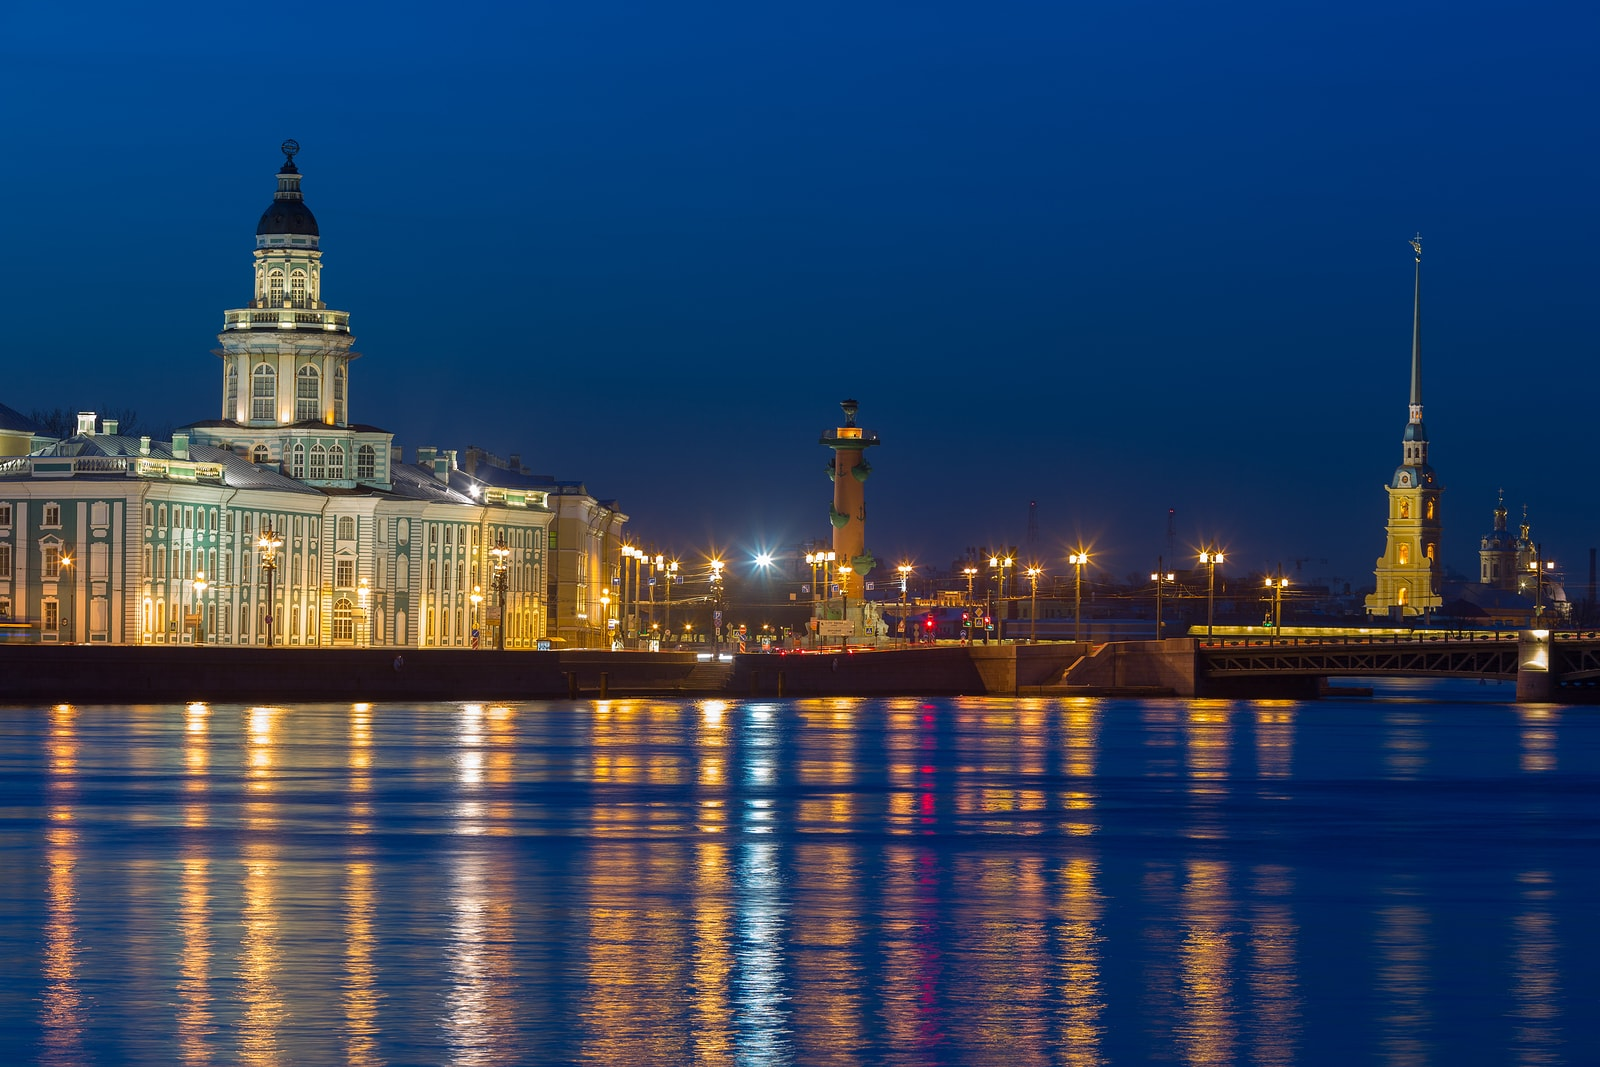 Iconic-View-Of-St-Petersburg